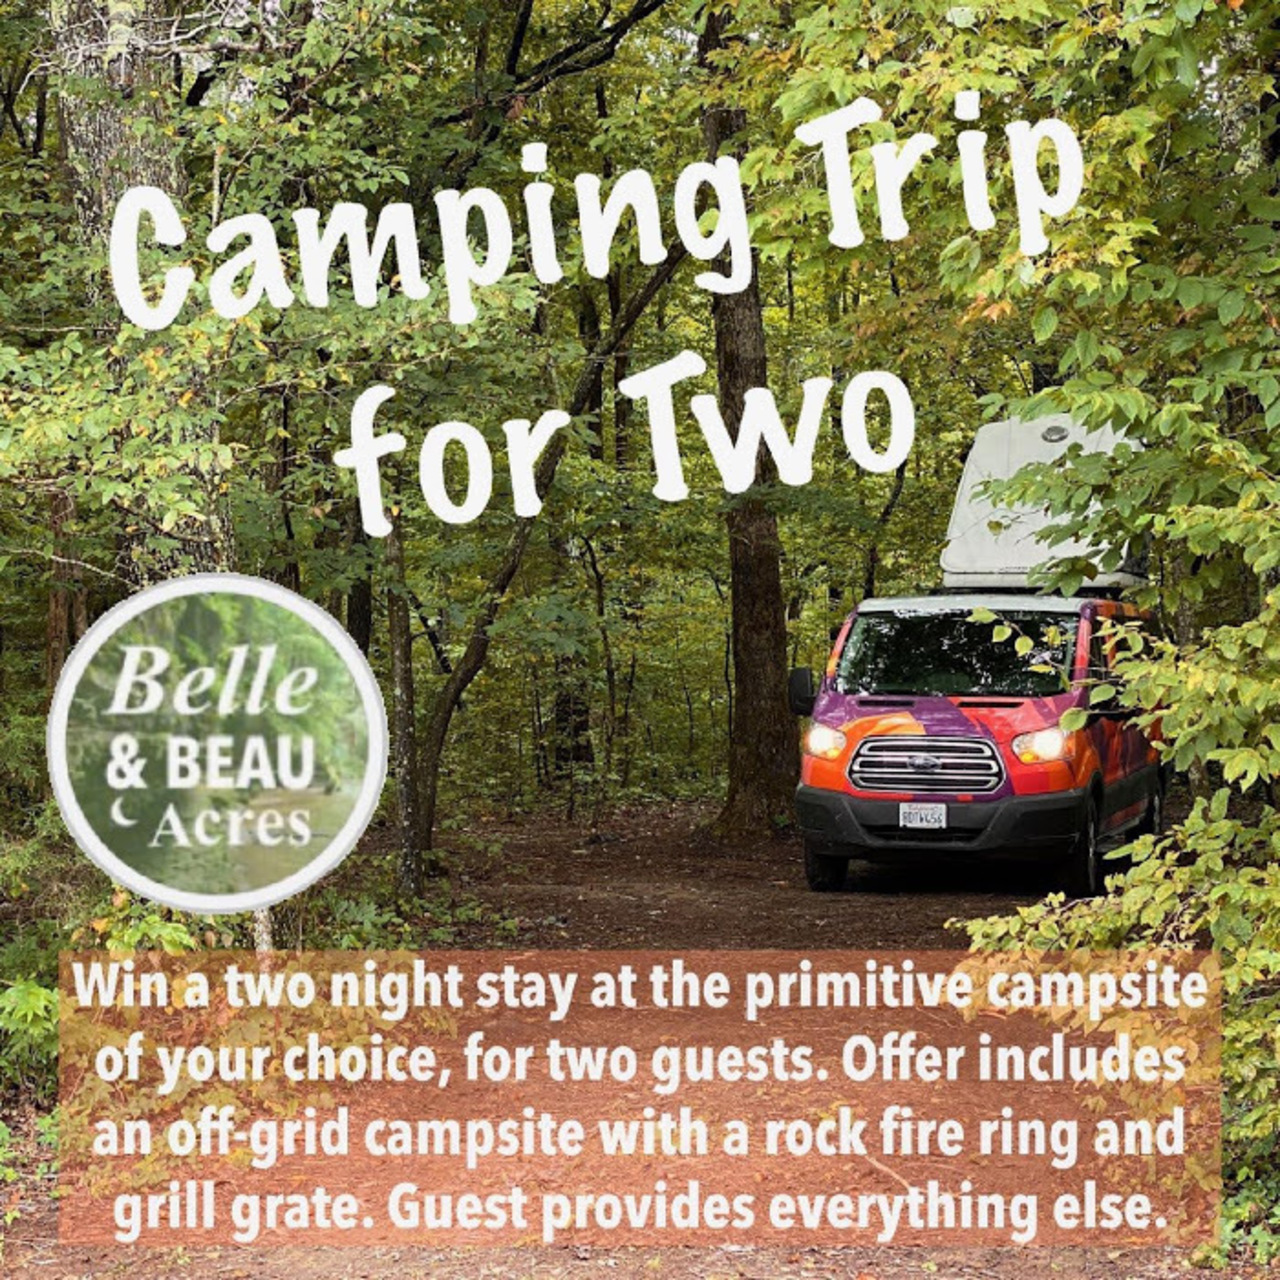 Camping at Belle & Beau Acres